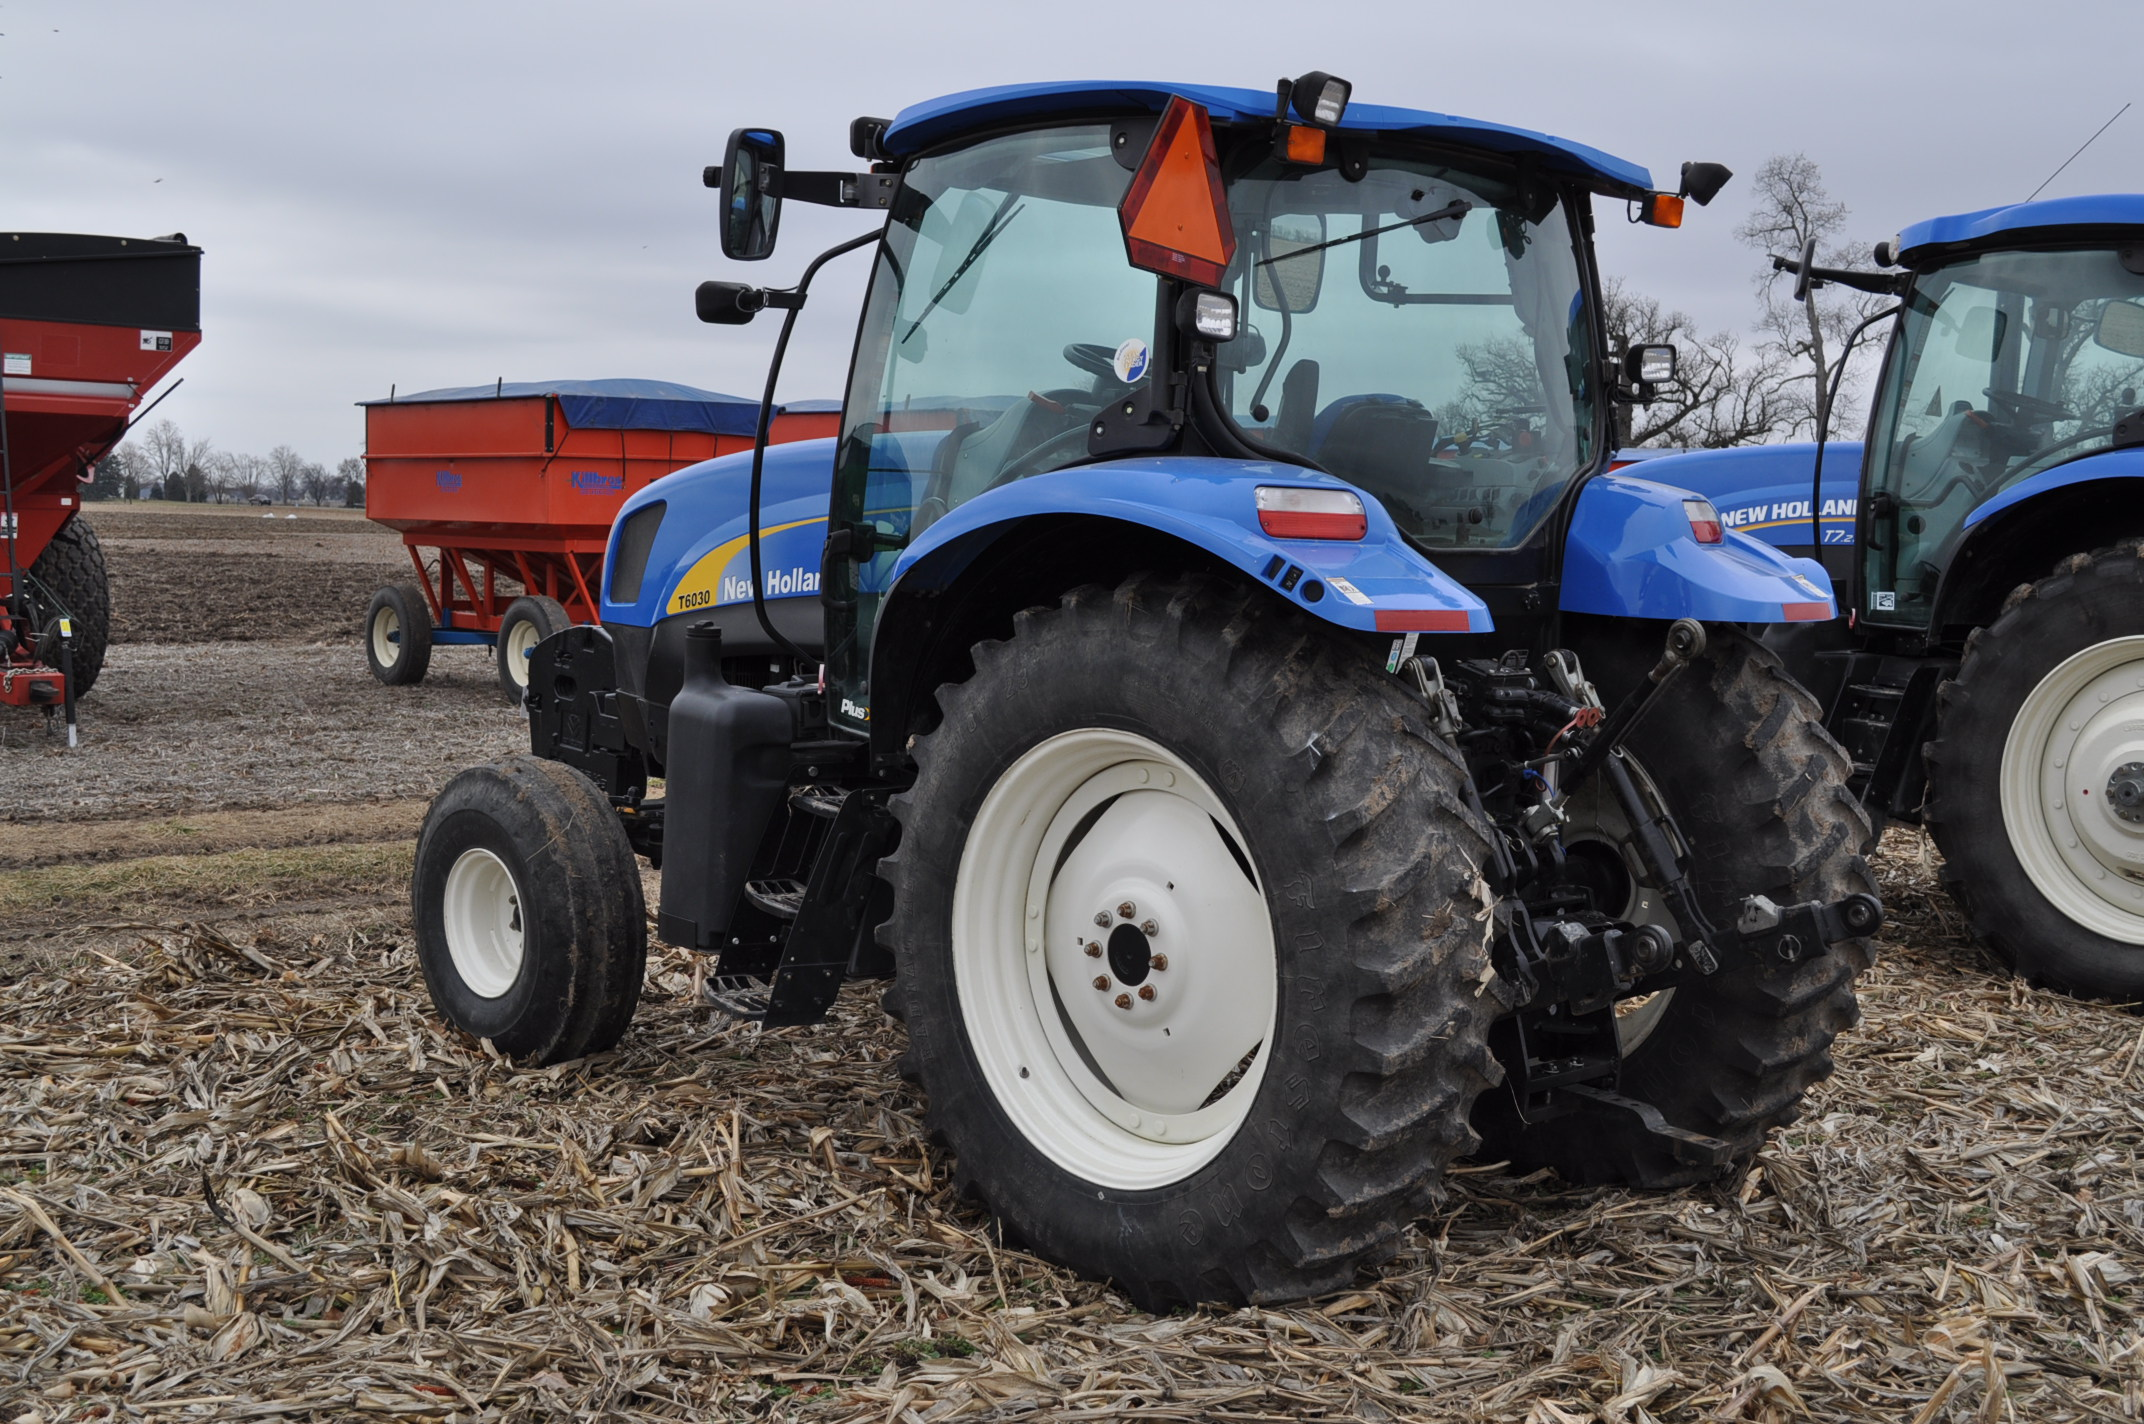 New Holland T6030 tractor, CHA, 16.9 R 38 tires, 11.00-16 front, 6 front wts, 3 hyd remotes, 3 pt, - Image 2 of 21